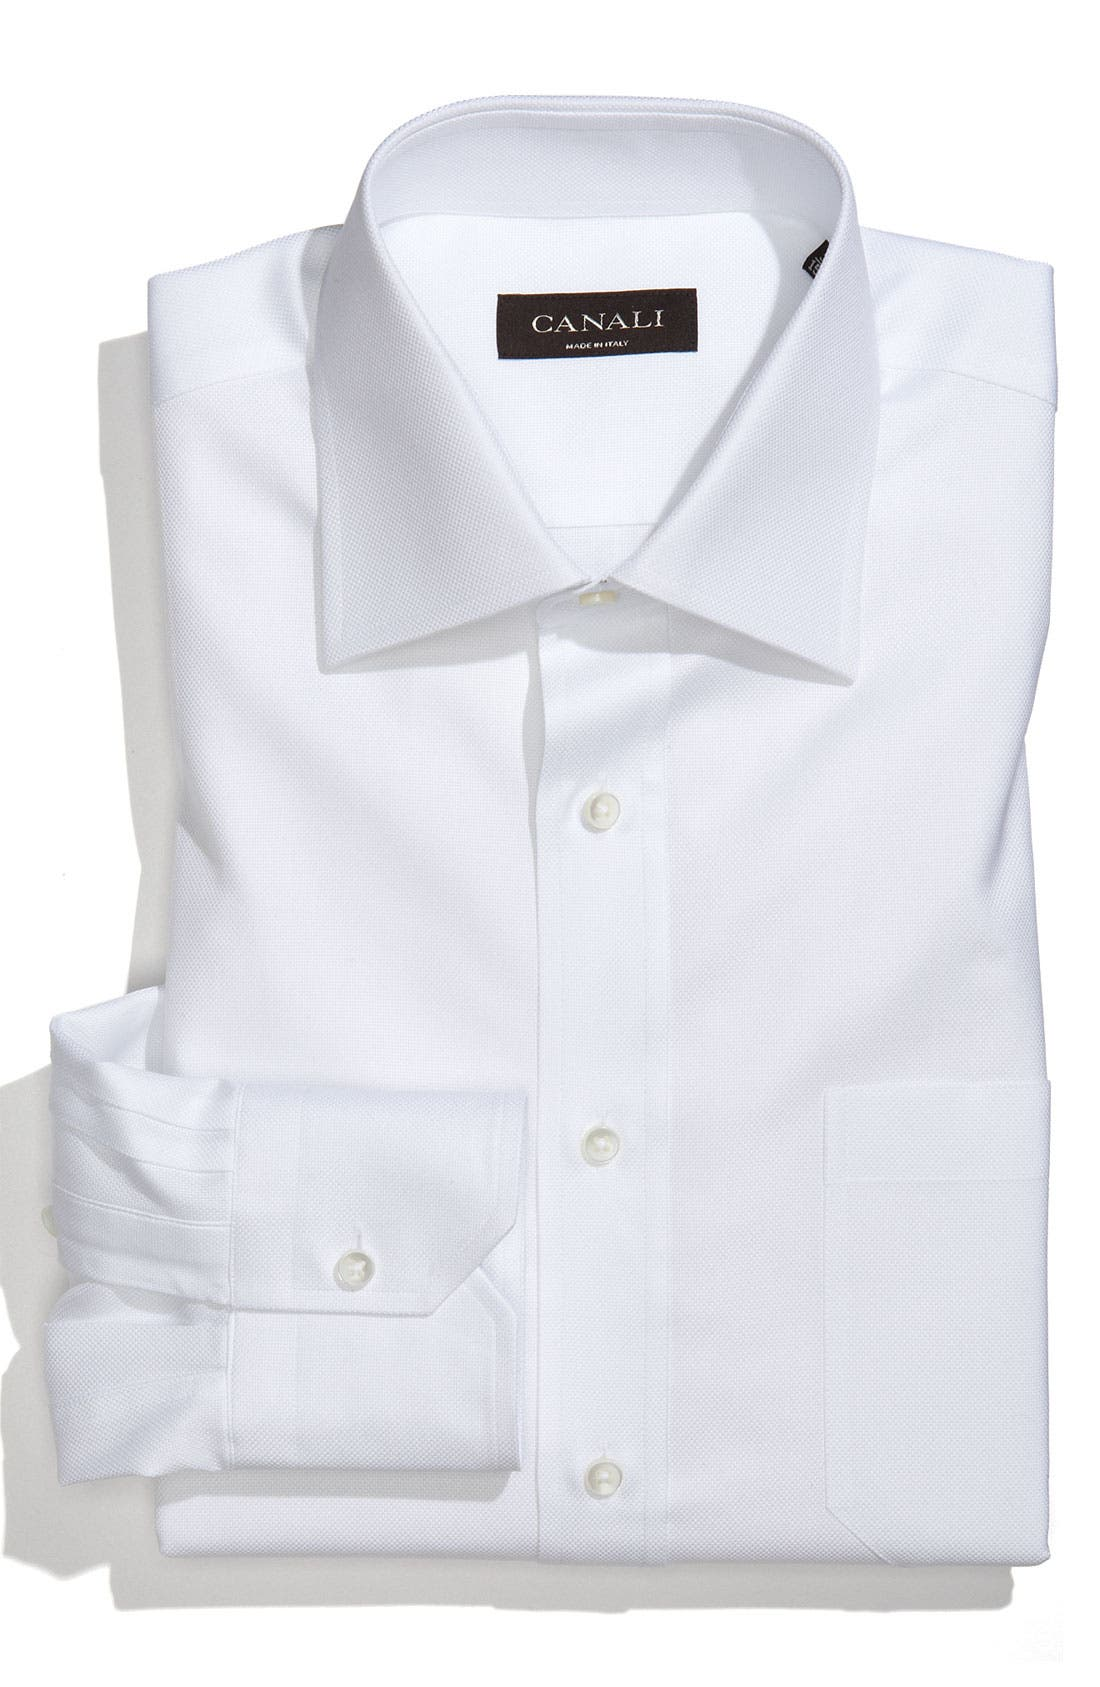 Main Image - Canali Men's Solid Cotton Regular Fit Dress Shirt